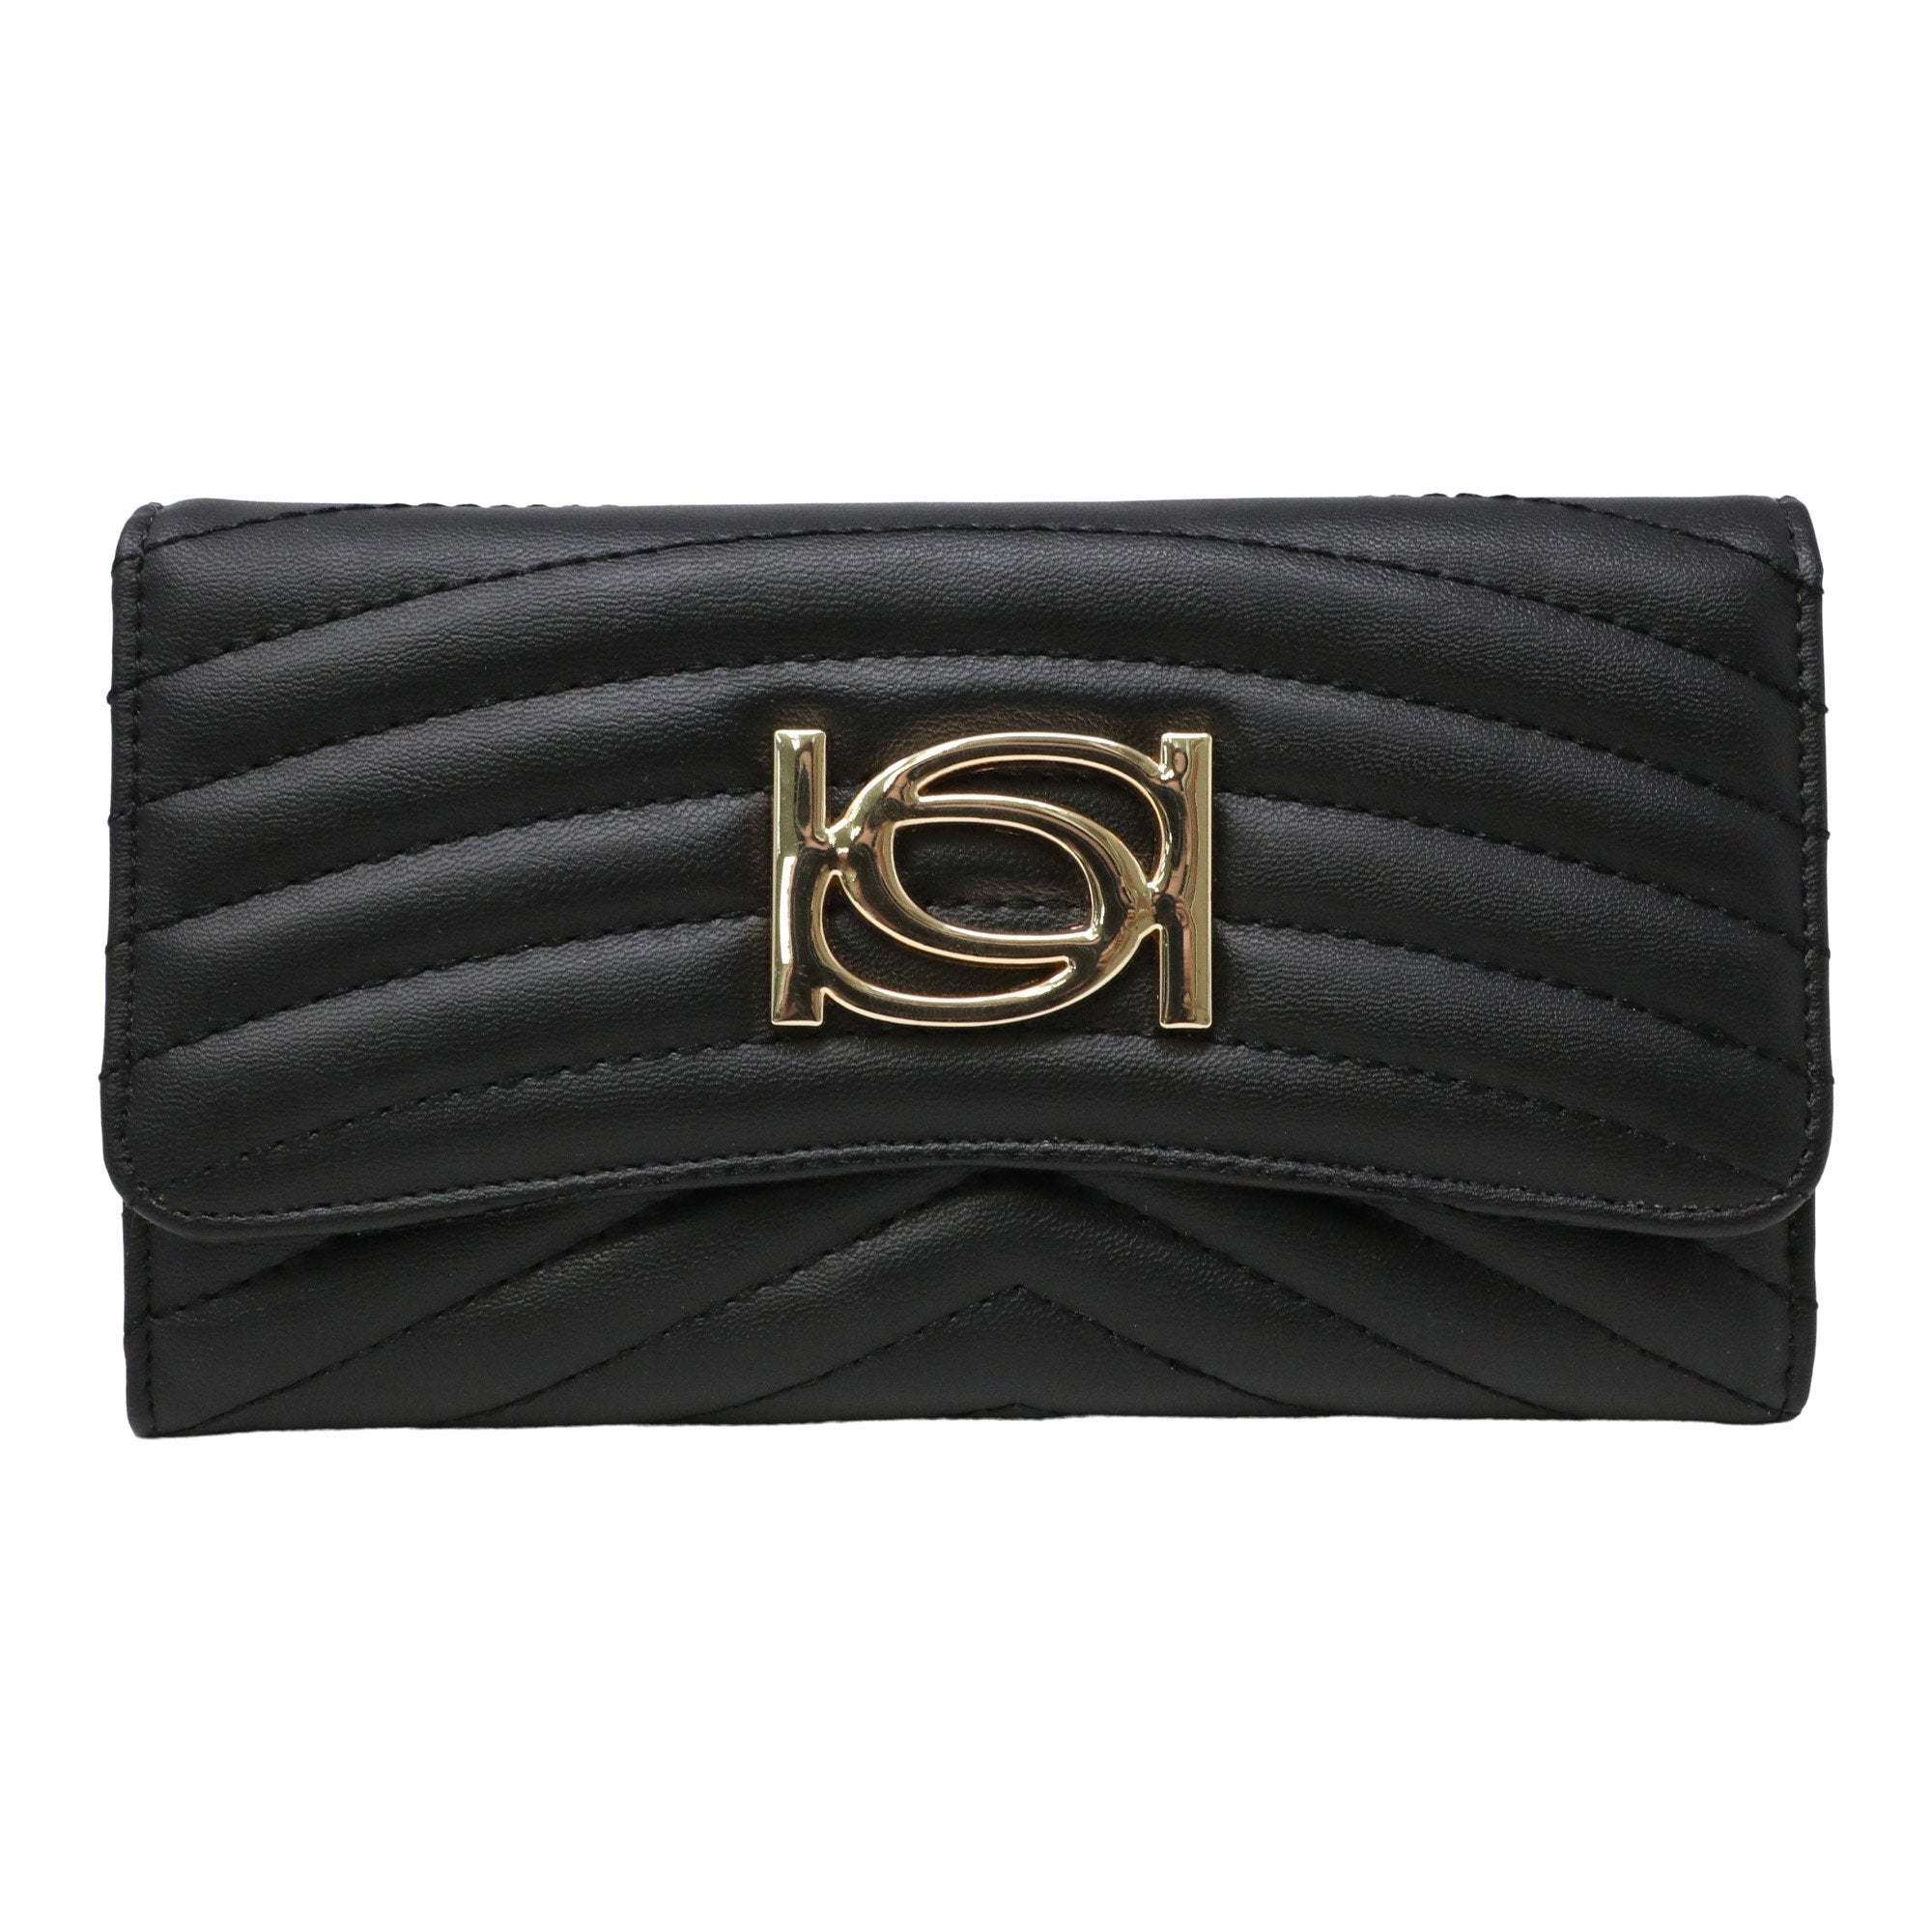 Bebe Women's Daisy Flap Wallet in Black Polyester